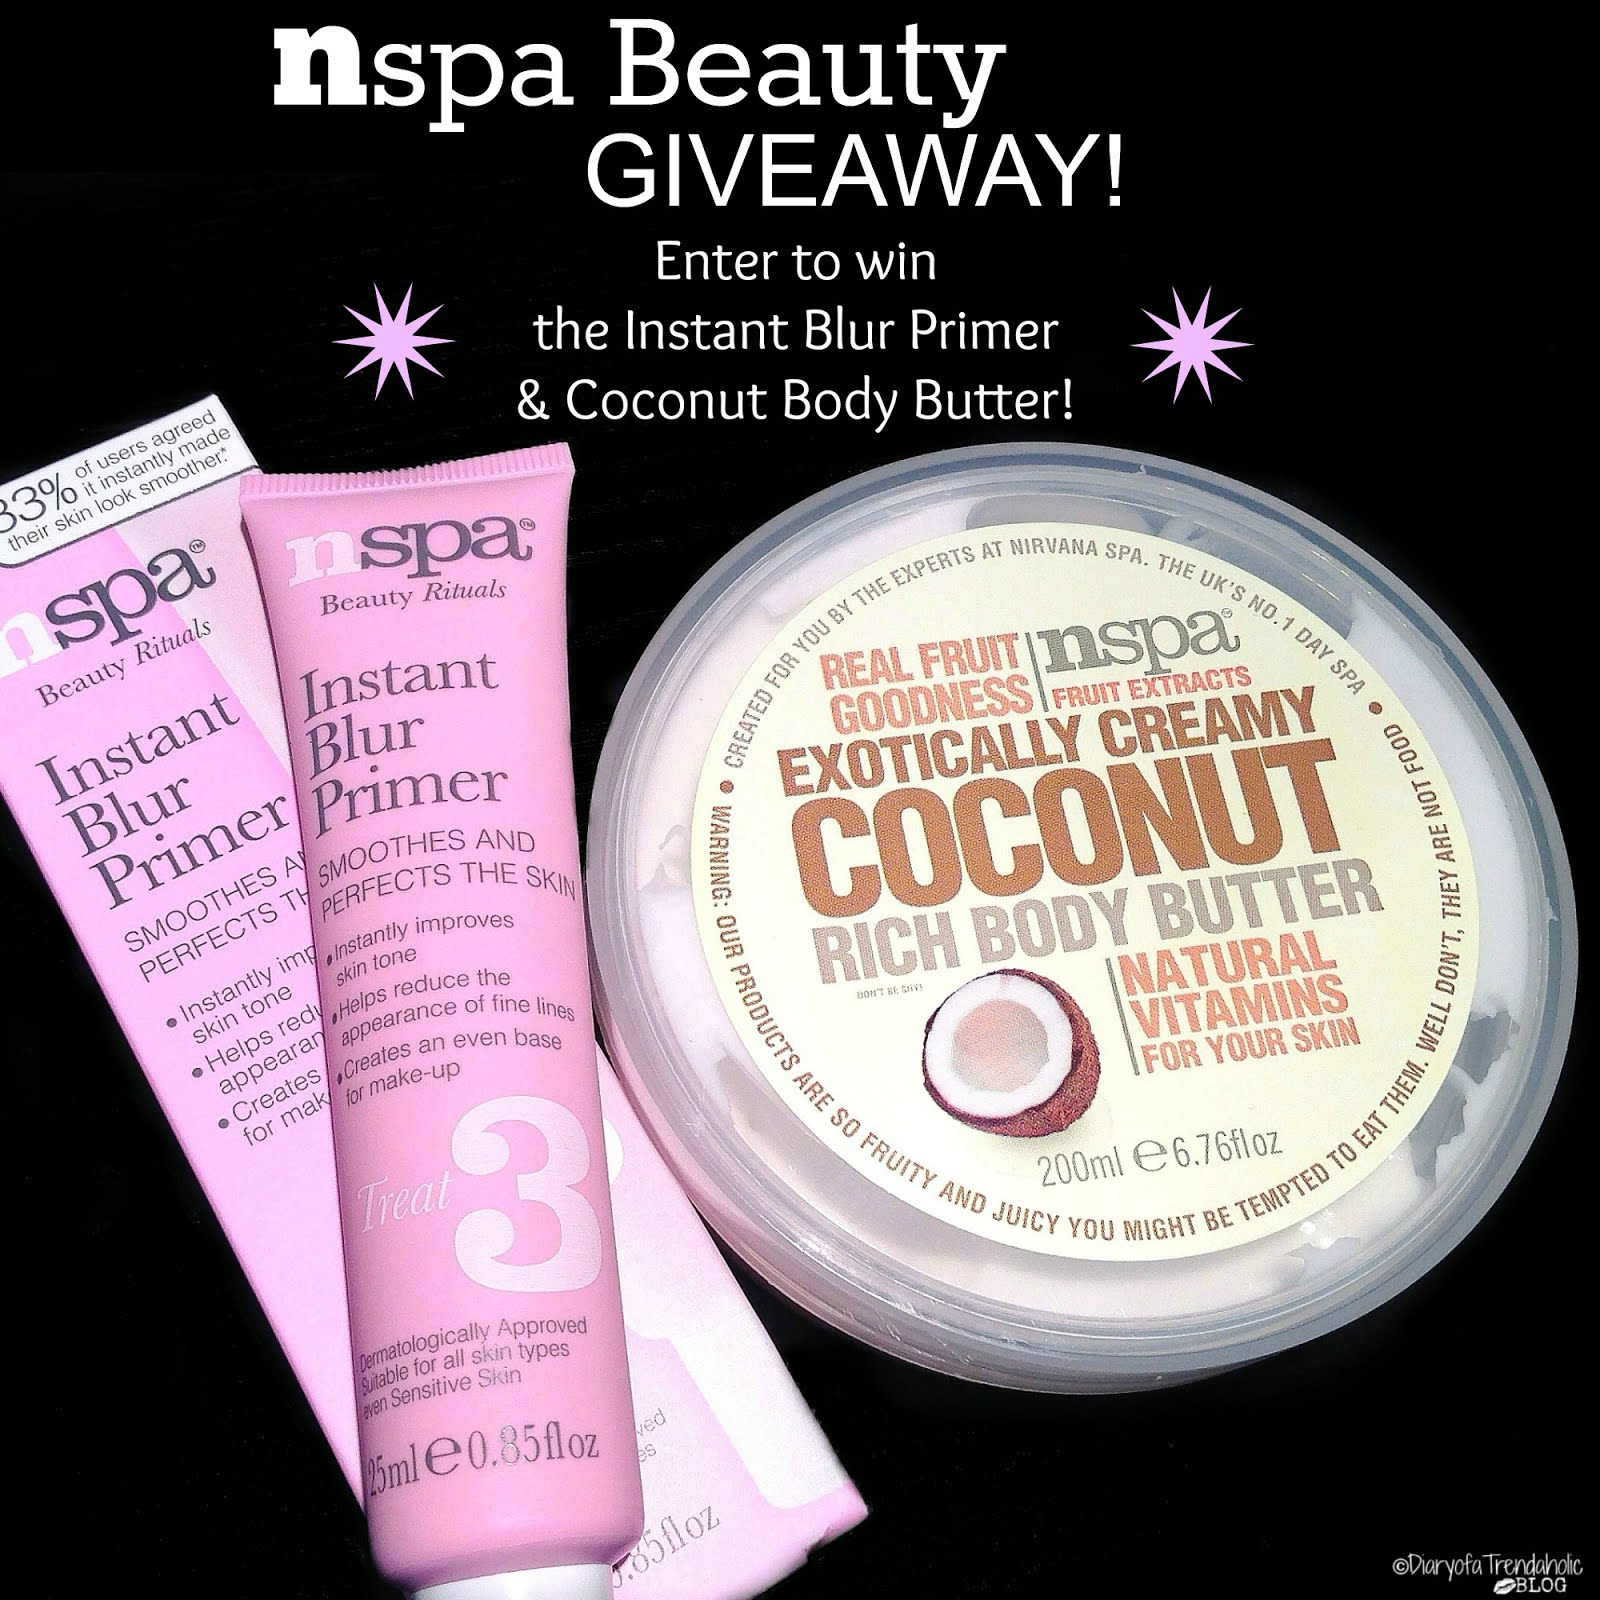 NSPA Beauty Giveaway!